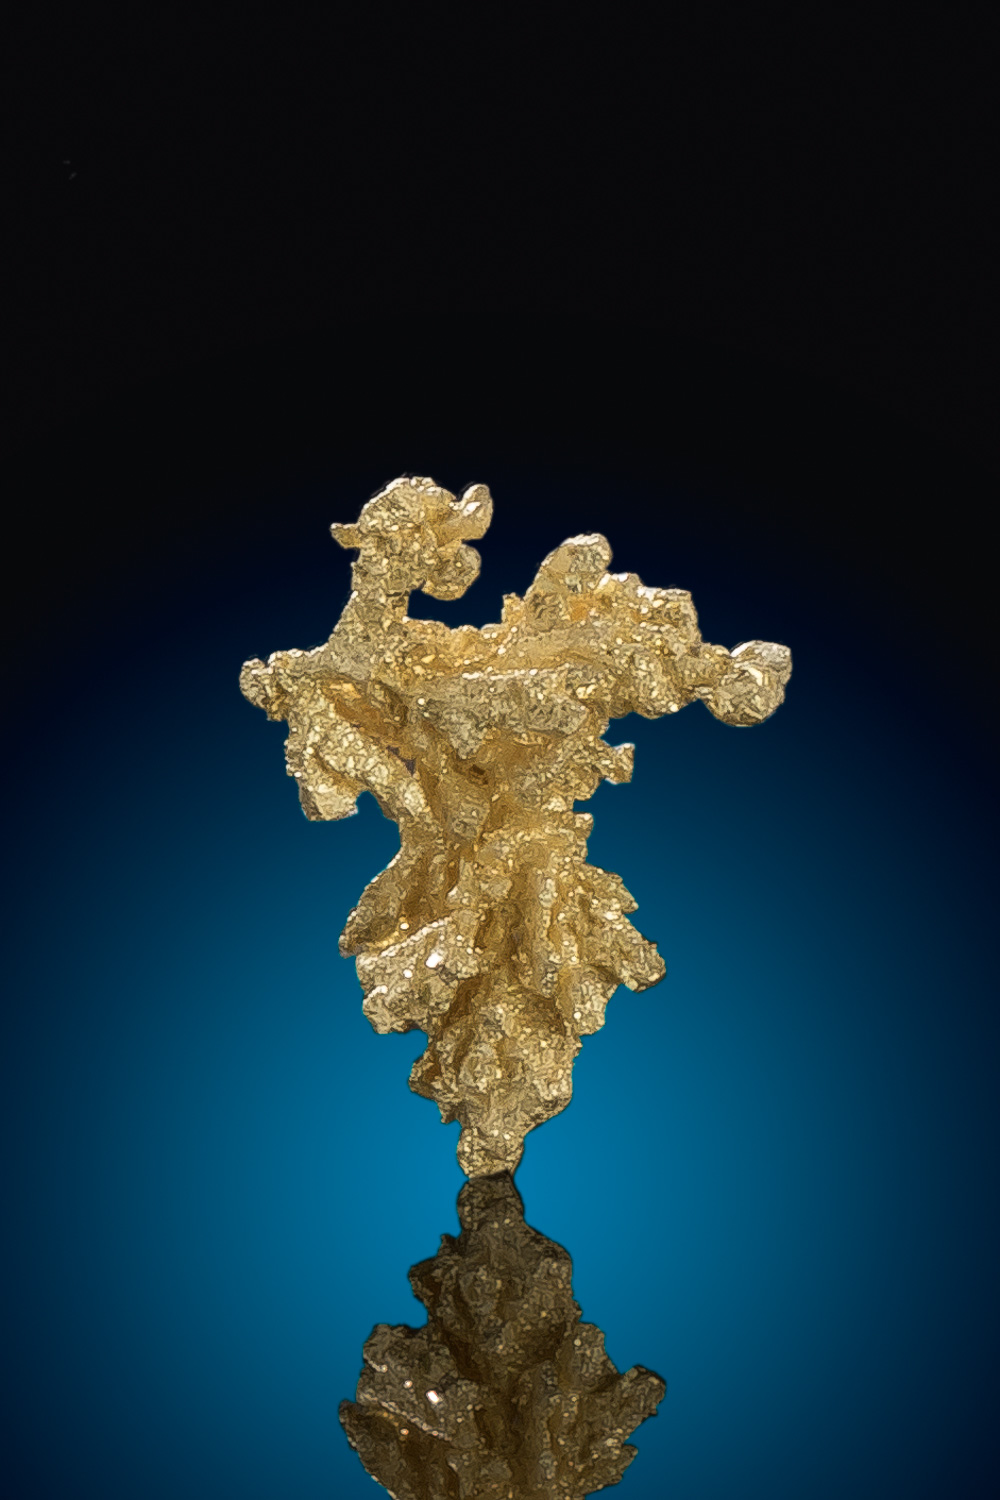 Intricate Gold Nugget Crystal - Round Mountain Gold Mine